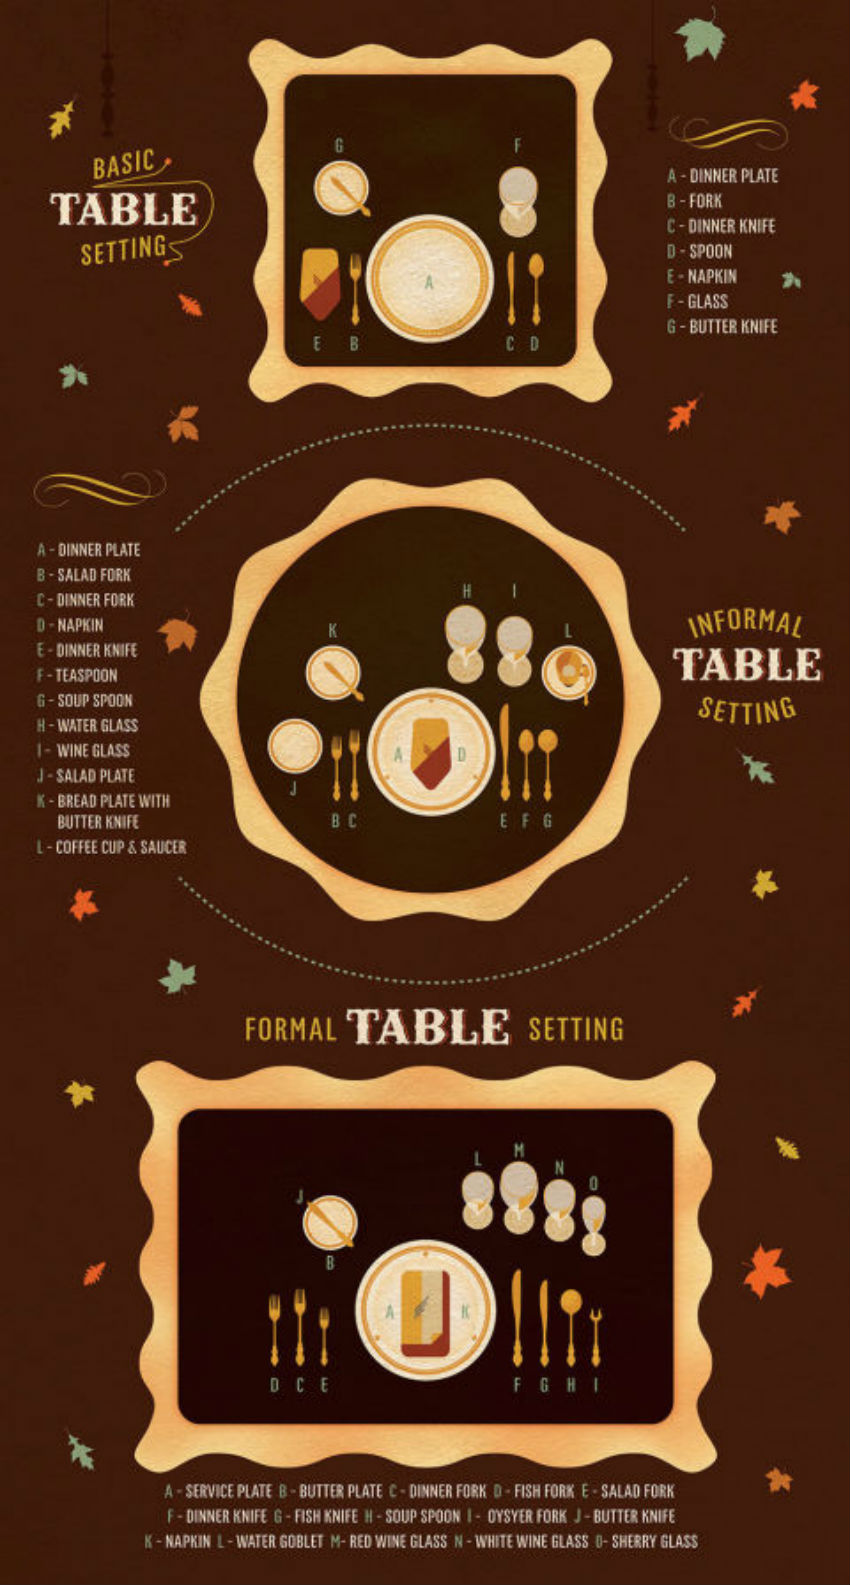 Setting the table properly will make dinner more enjoyable. Image Source: Good Housekeeping